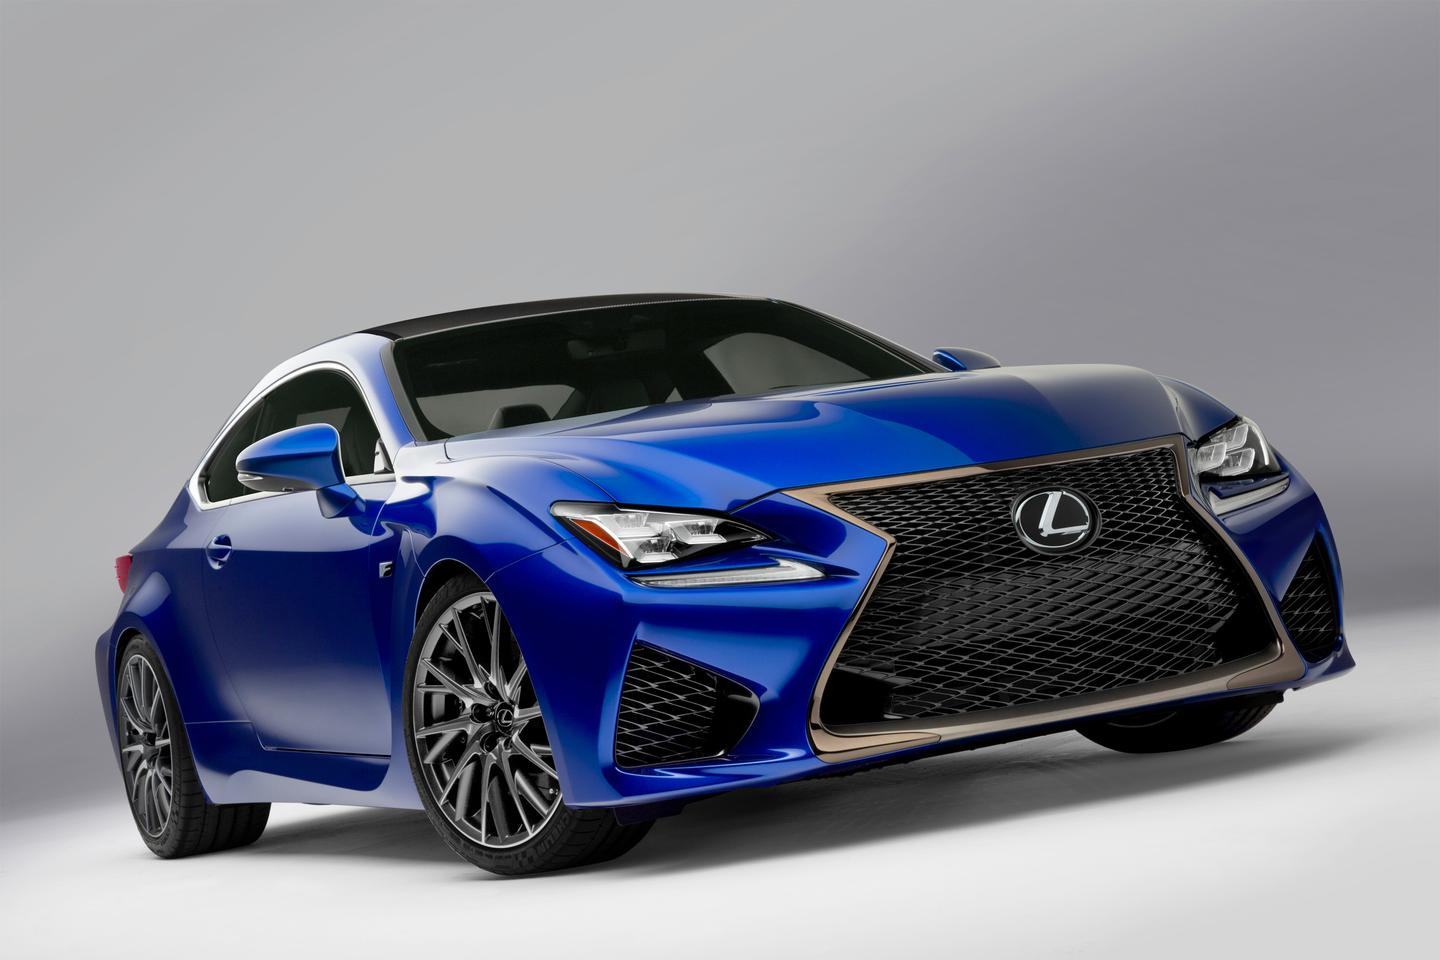 The Lexus RC F is a high-performance version of the RC